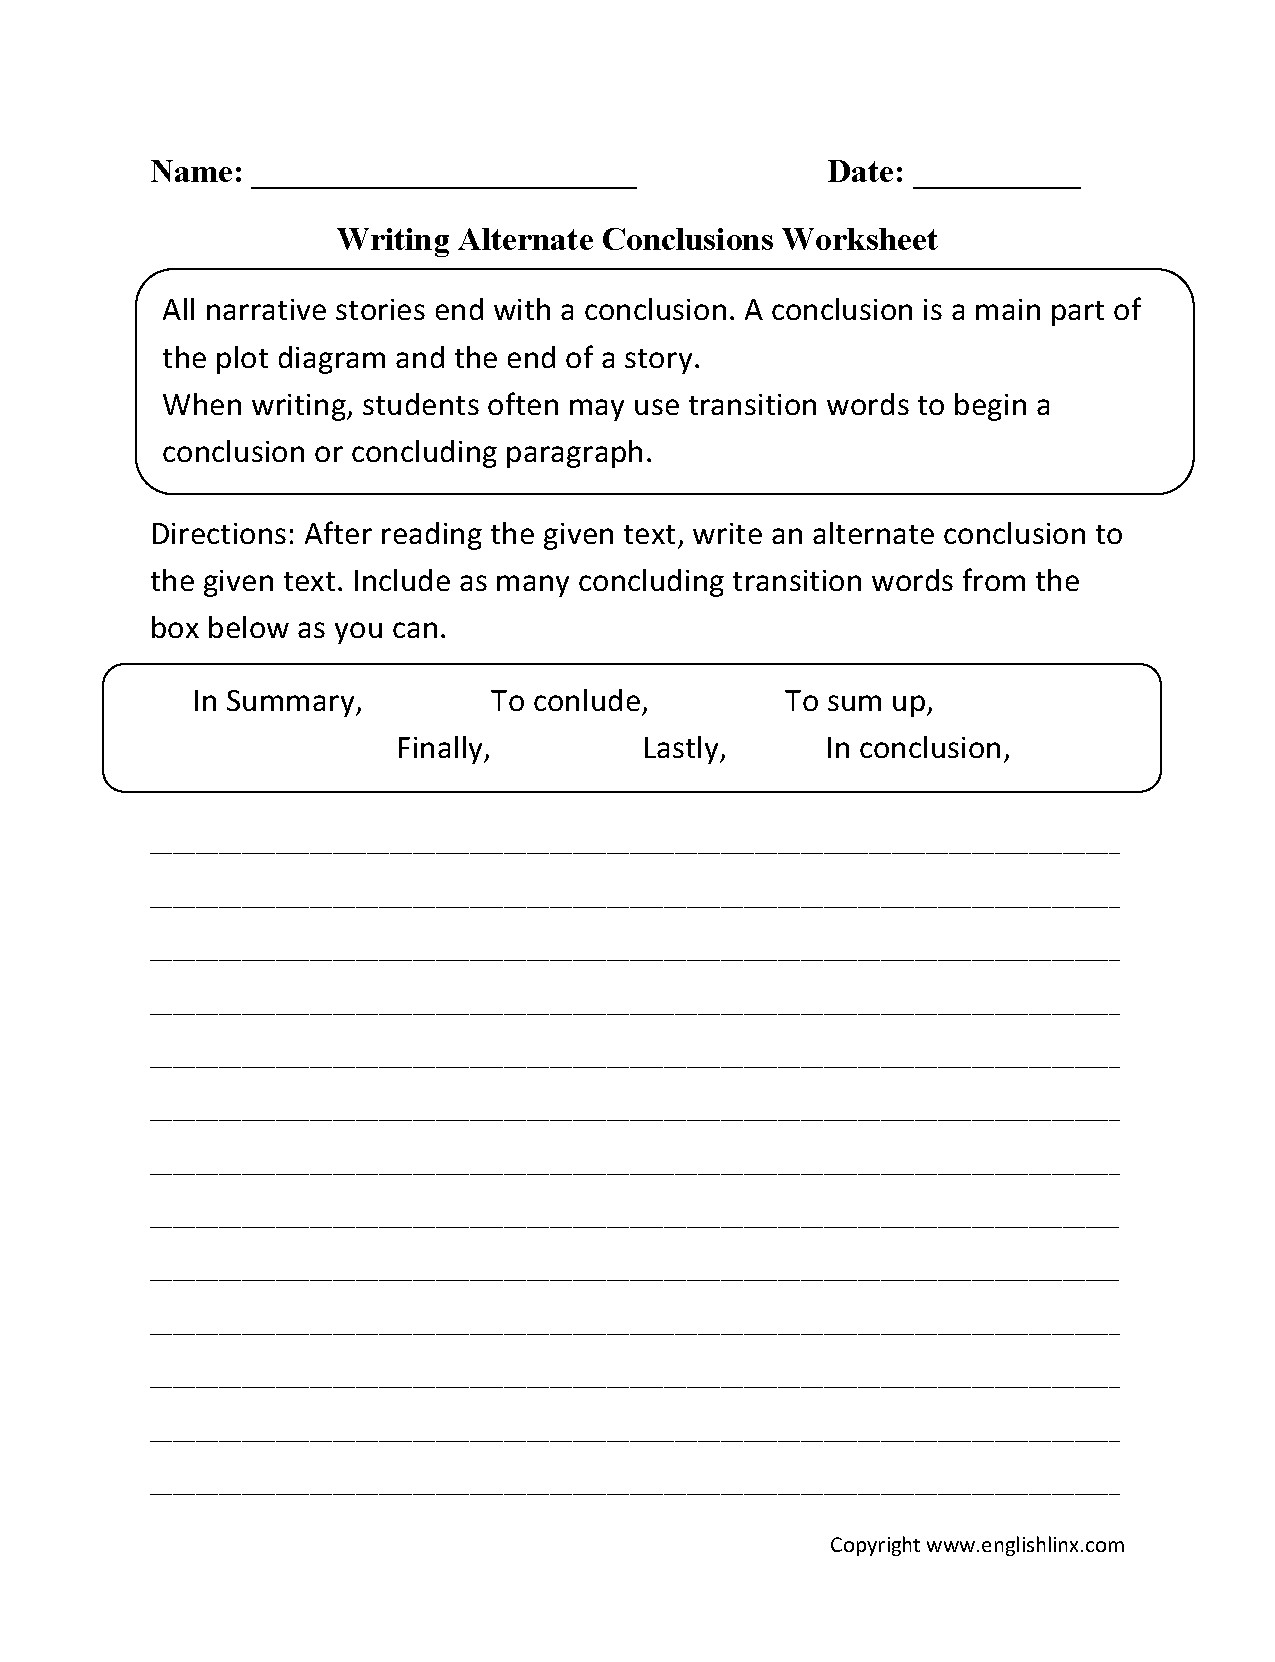 027 Englishlinx Writing Conclusions Worksheets Pertaining To Conclusion Paragraph Examples 5th Grade Research Impressive High School Example For Persuasive Essay Essays Full